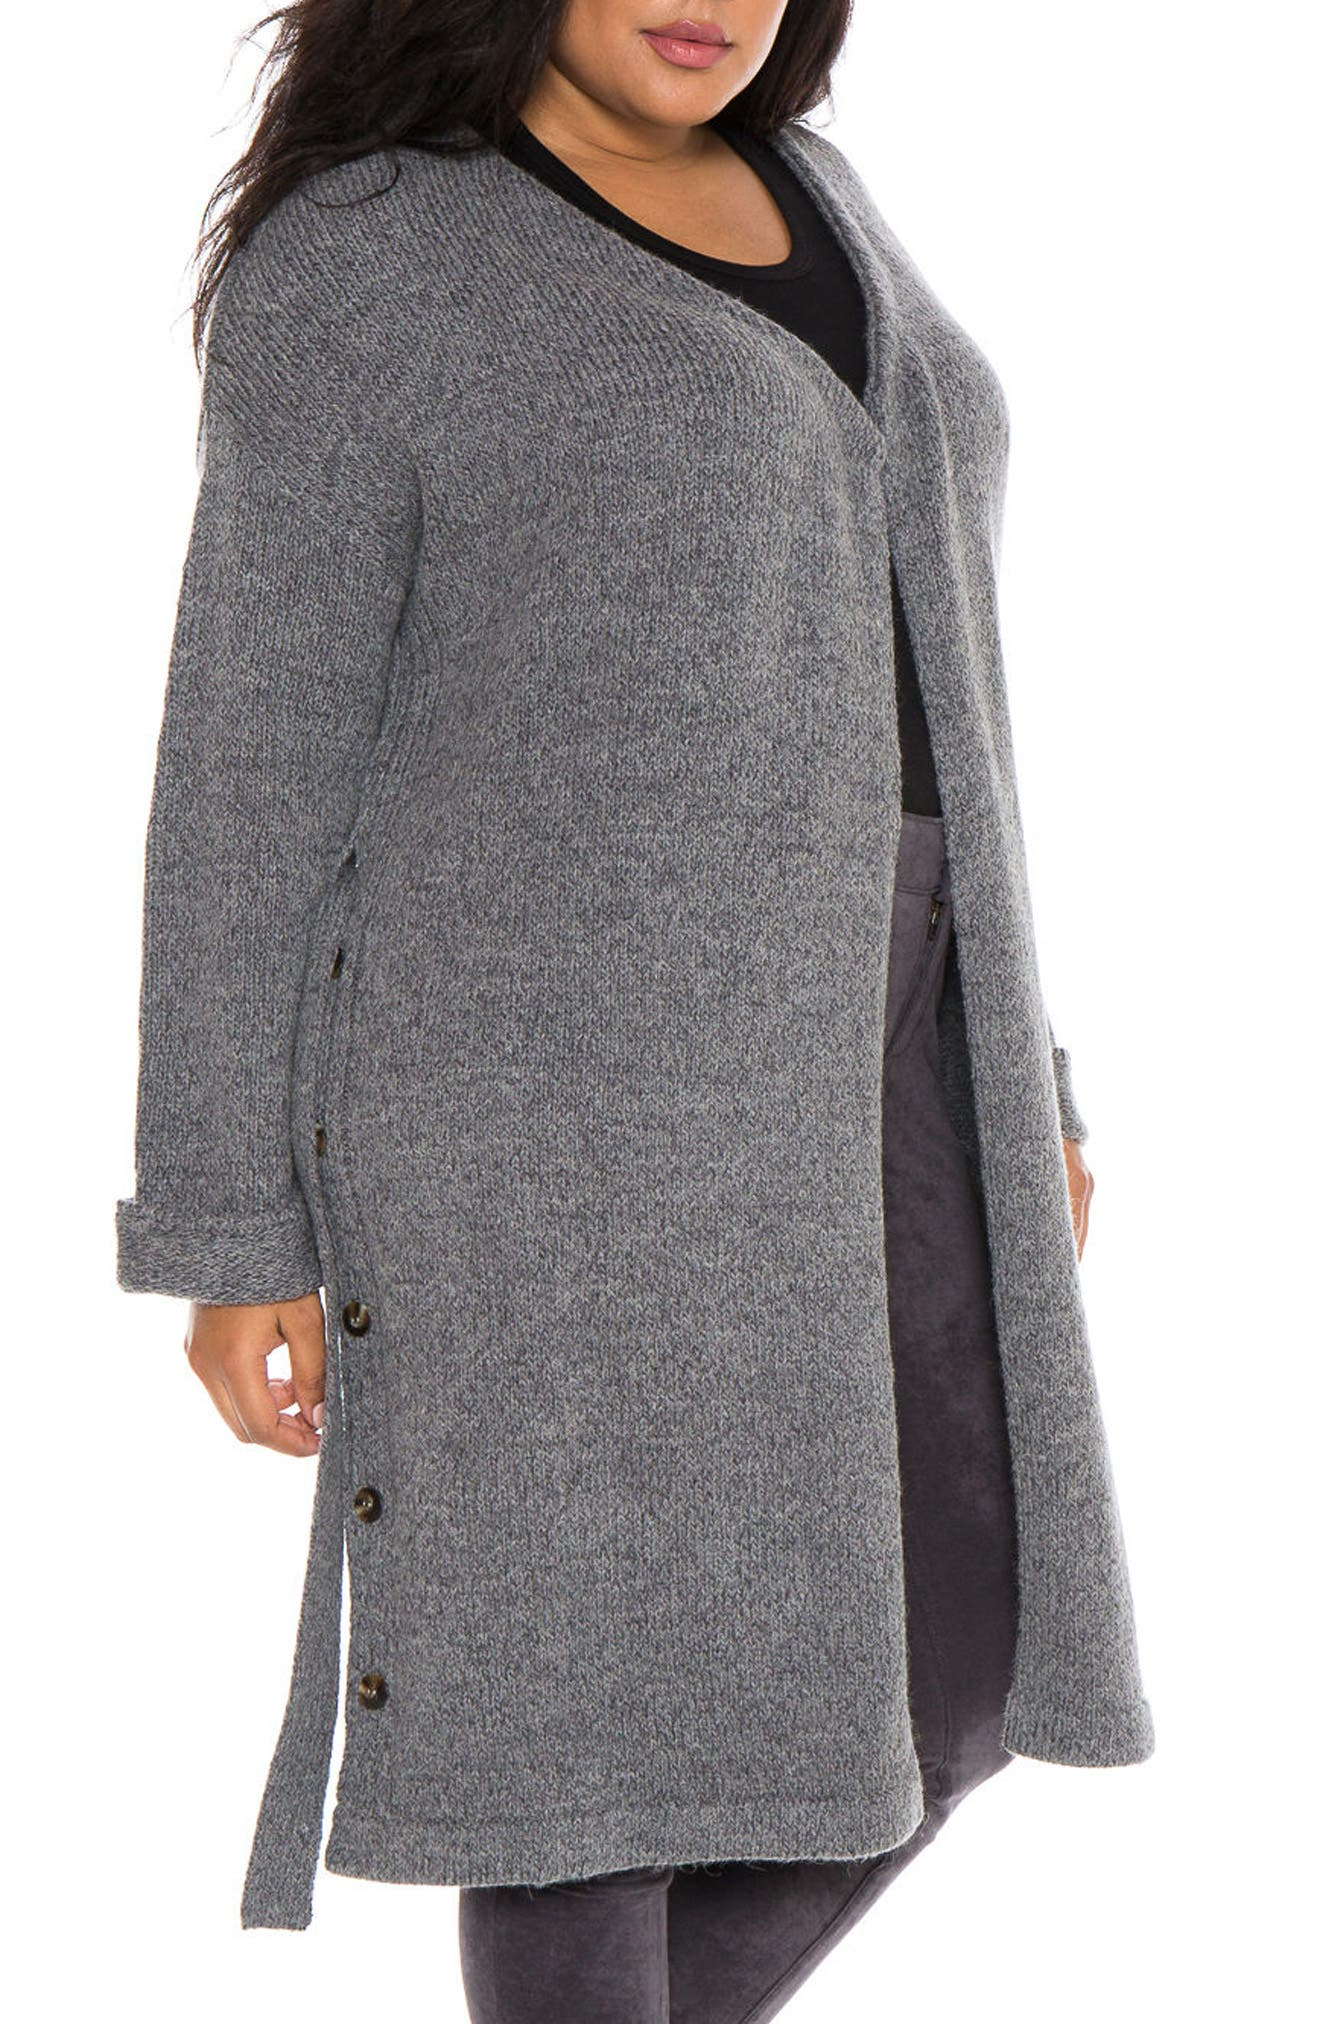 Alternate Image 1 Selected - SLINK Jeans Side Button Long Cardigan (Plus Size)